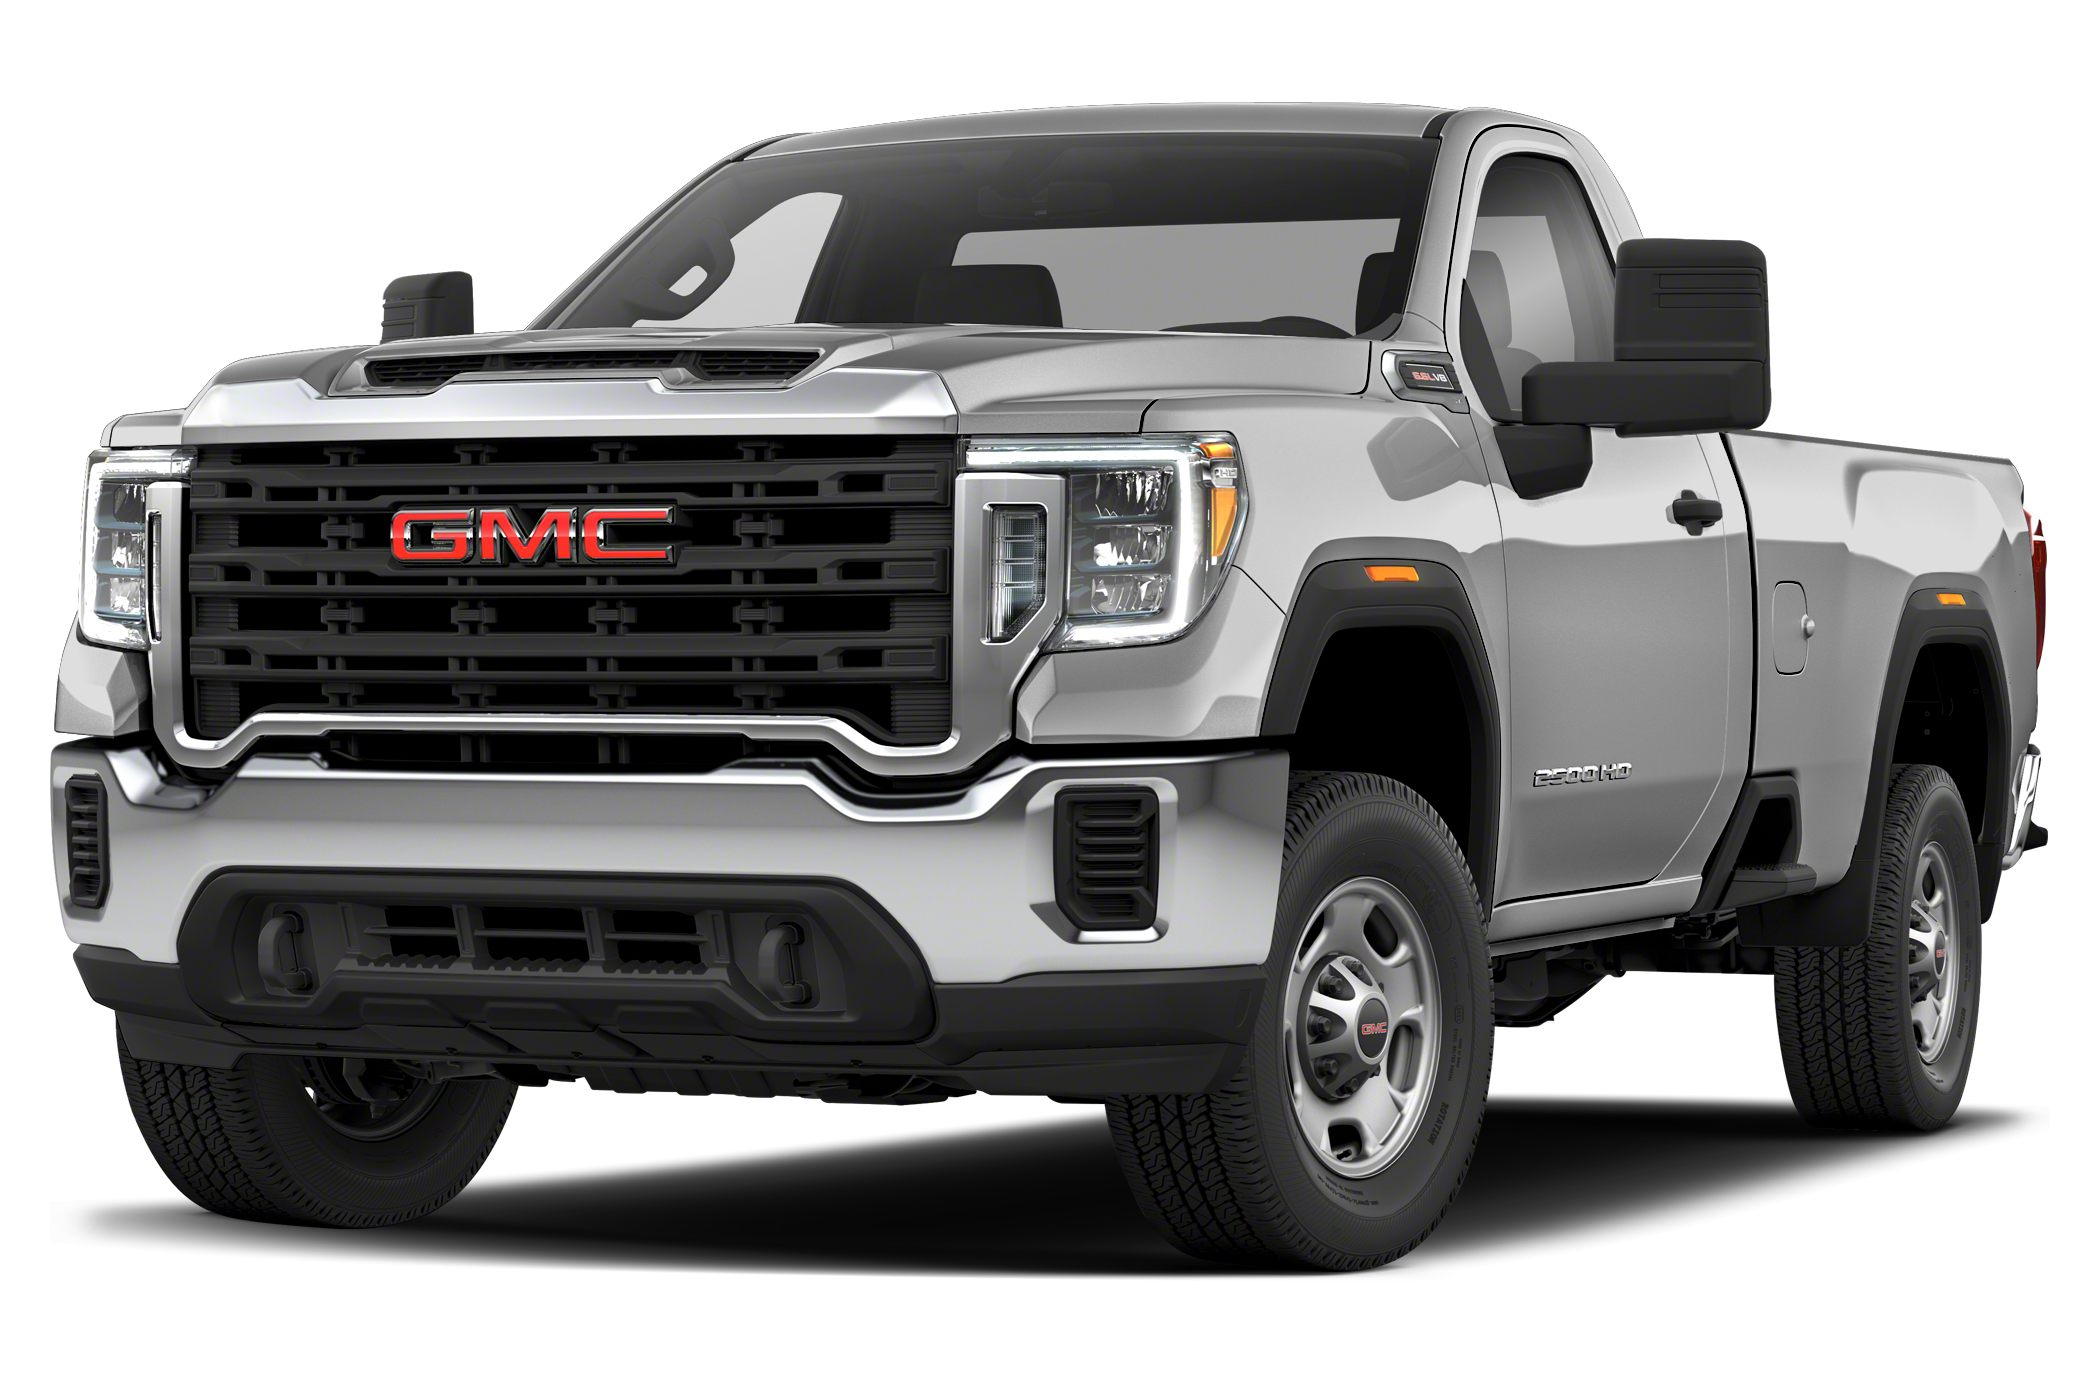 2020 Gmc Sierra 2500hd Pictures